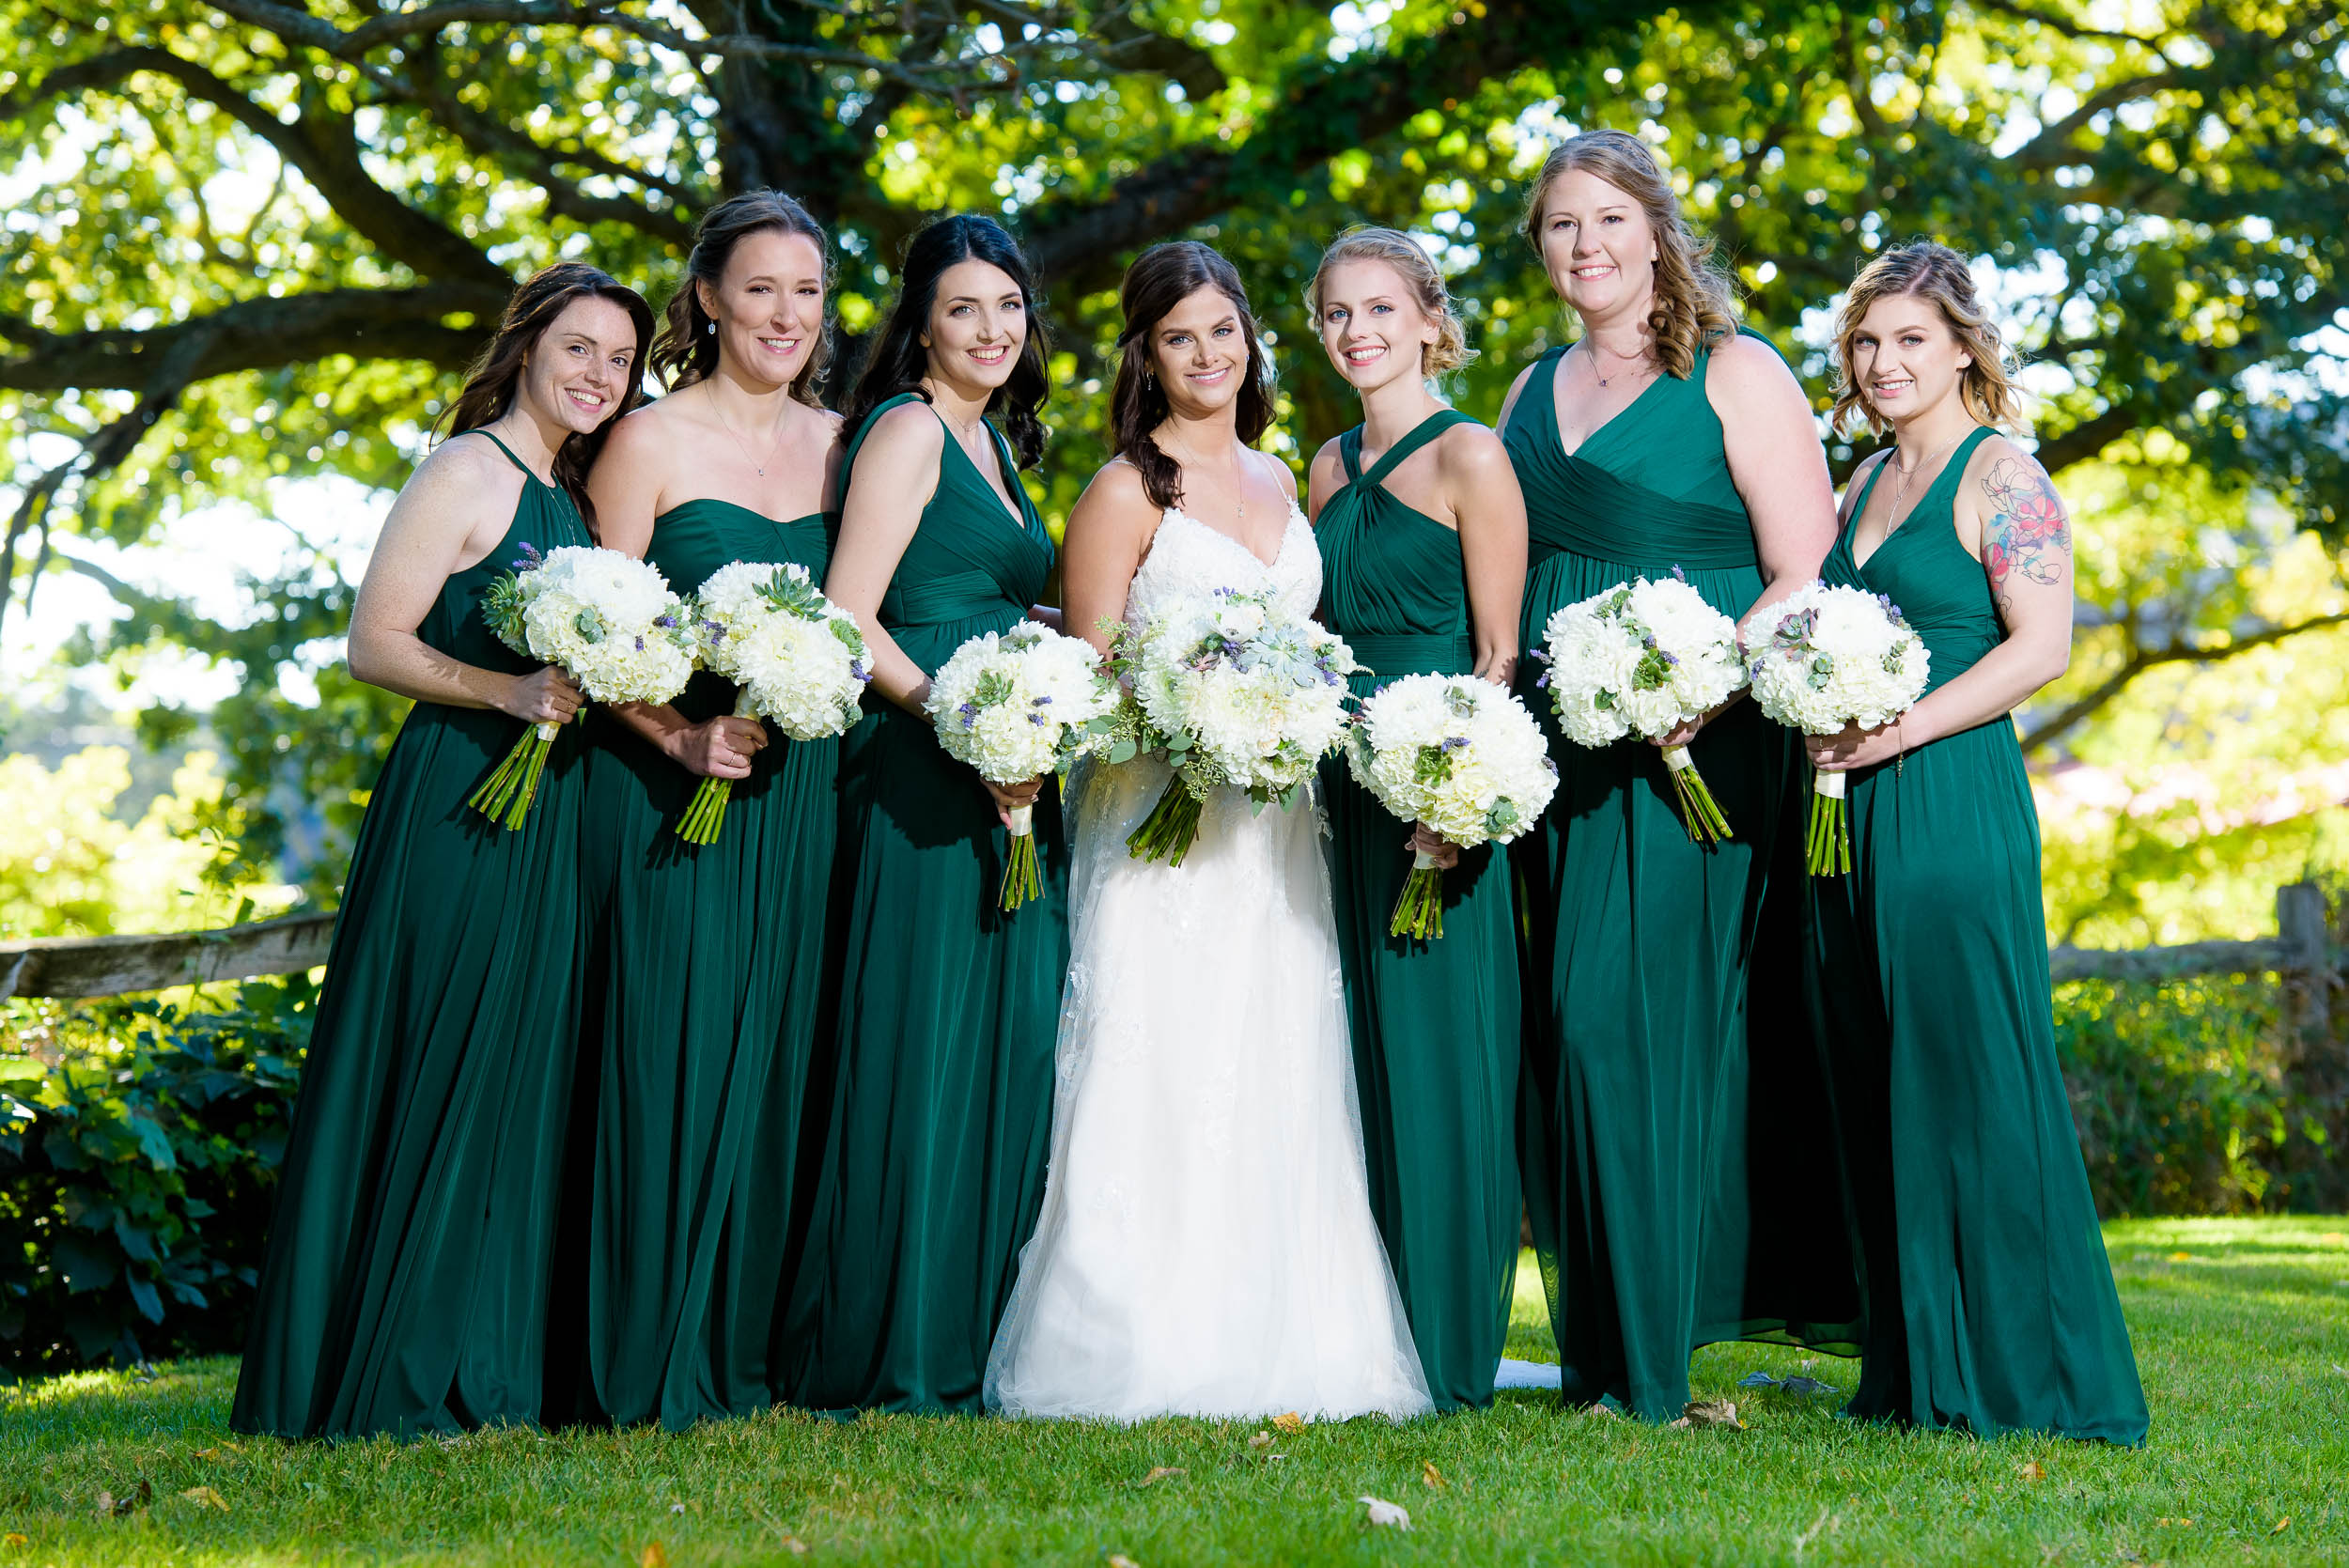 Green bridesmaids dresses for Grand Geneve Resort Fall Chicago Wedding captured by J. Brown Photography. Visit jbrownphotography.com for more wedding inspiration!